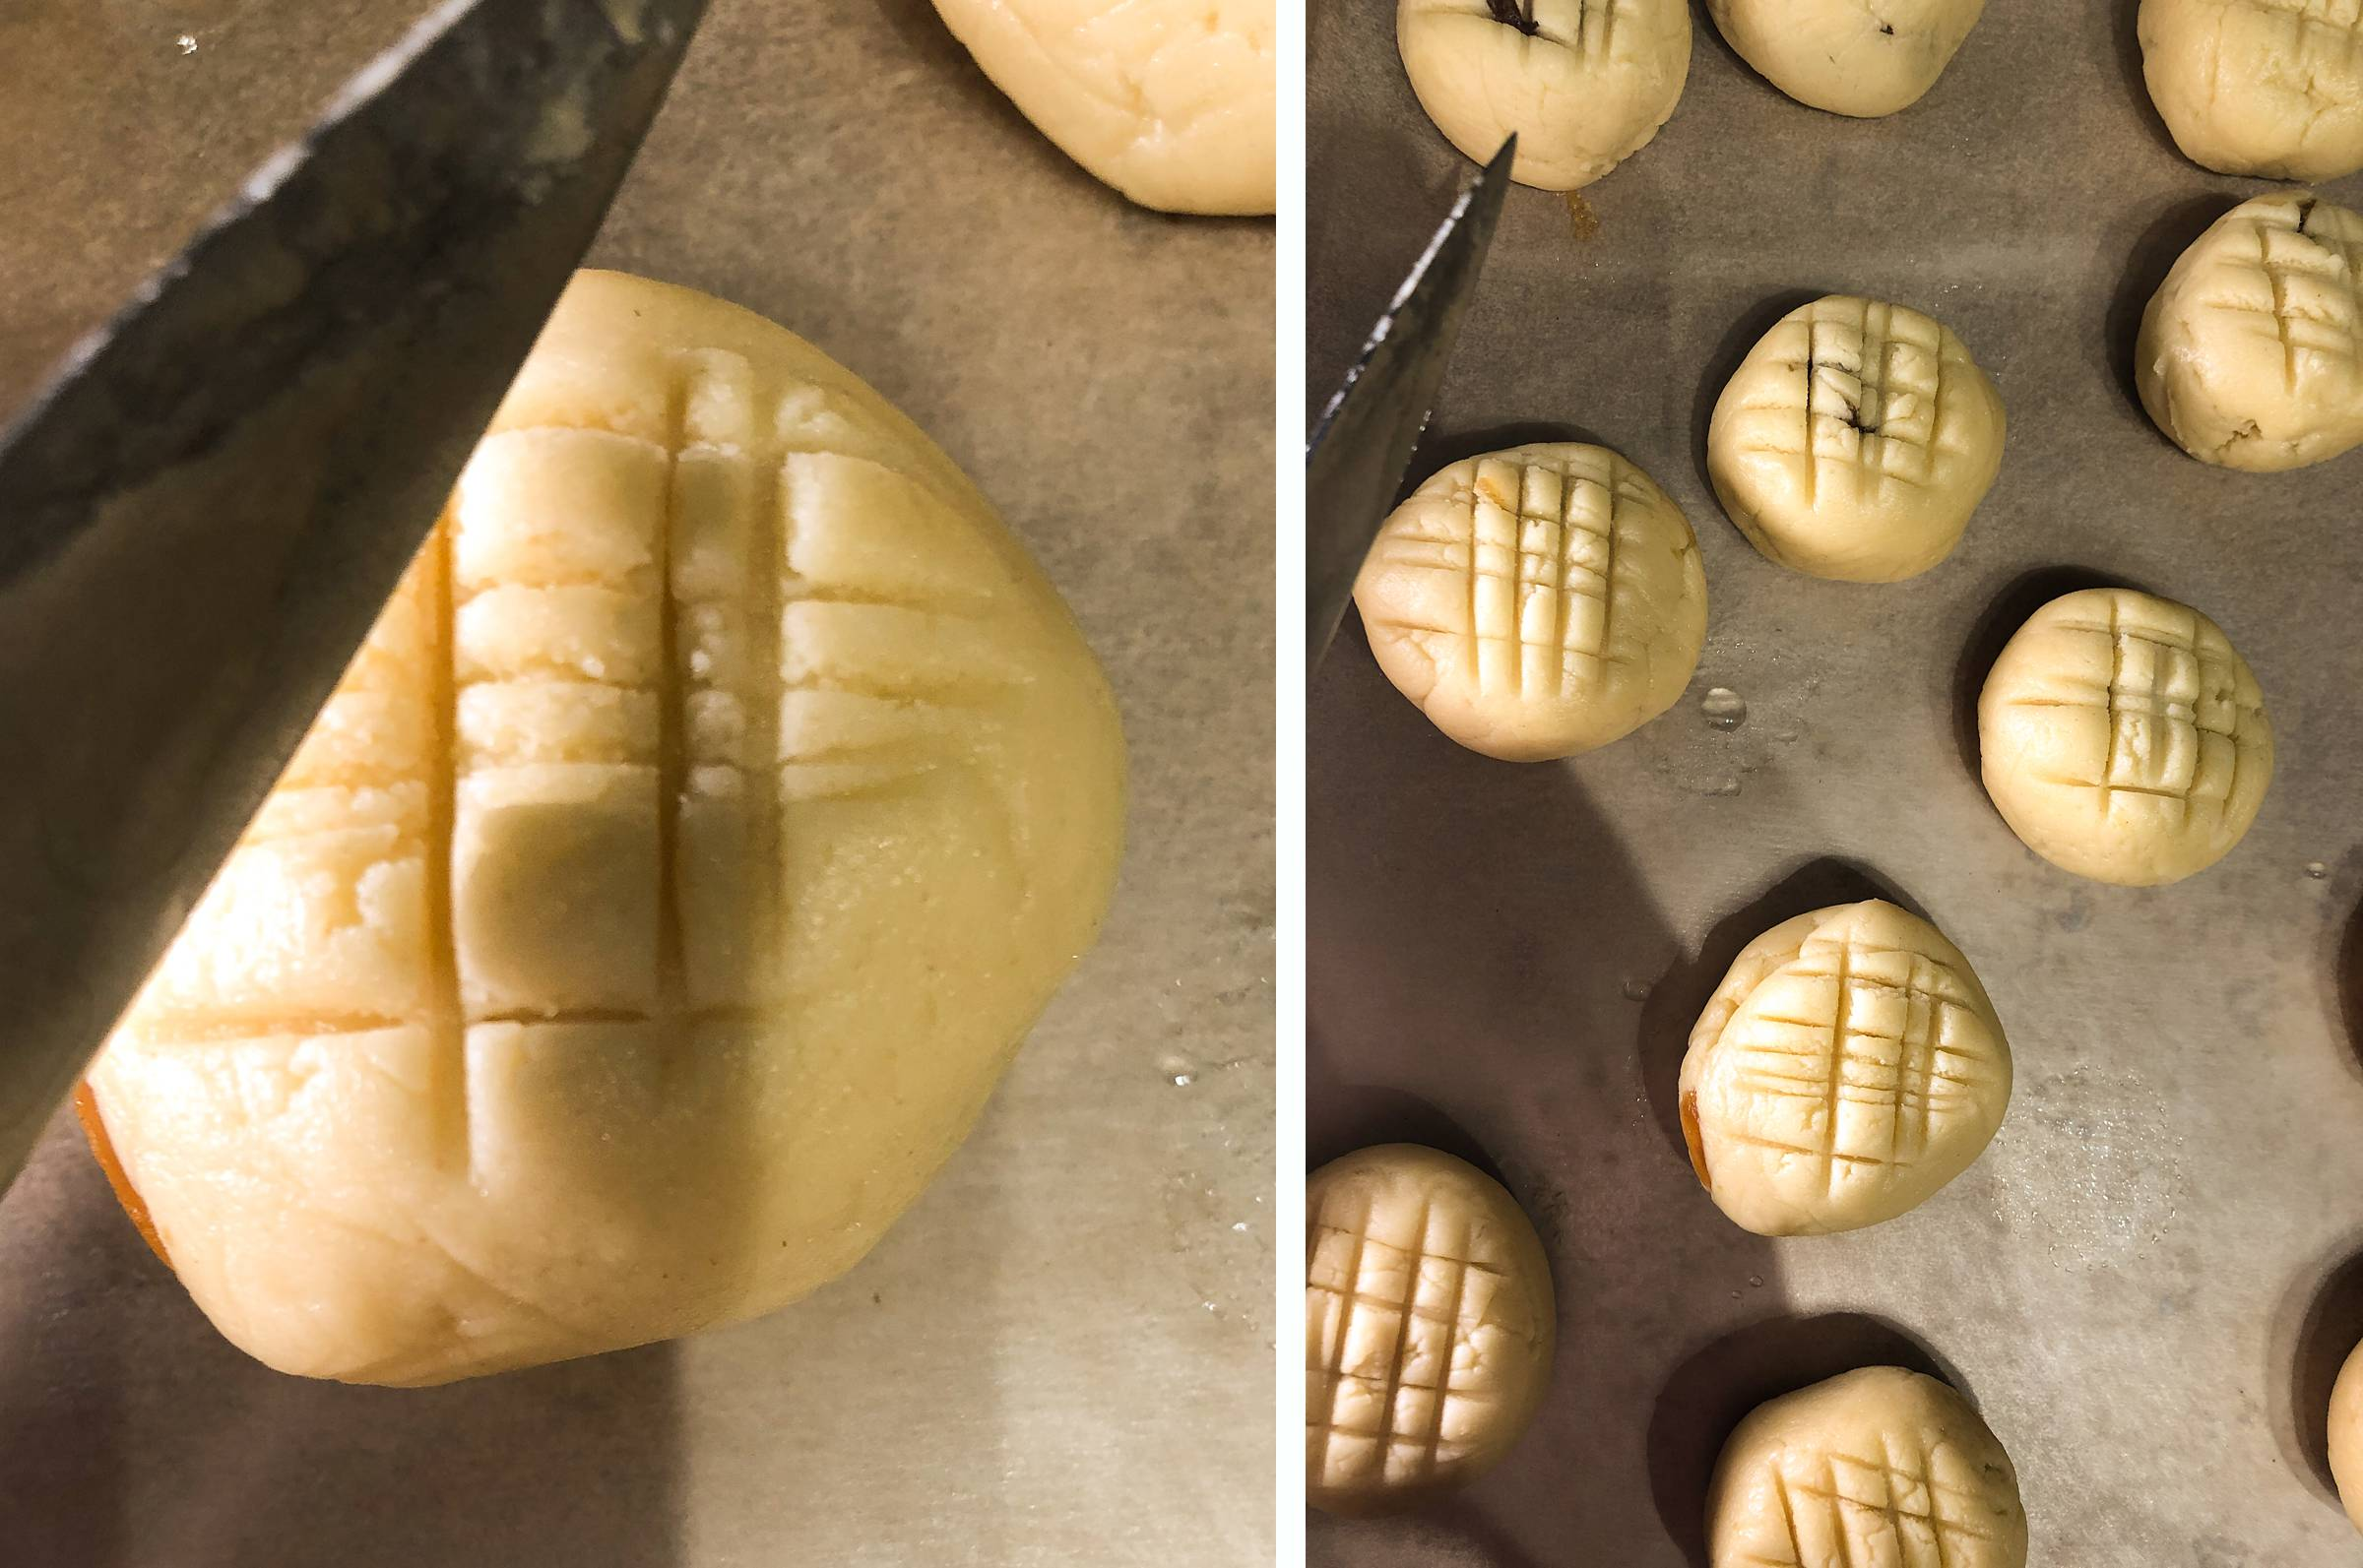 Singaporean pineapple tart recipe from scratch for Chinese new year buttery melt in mouth